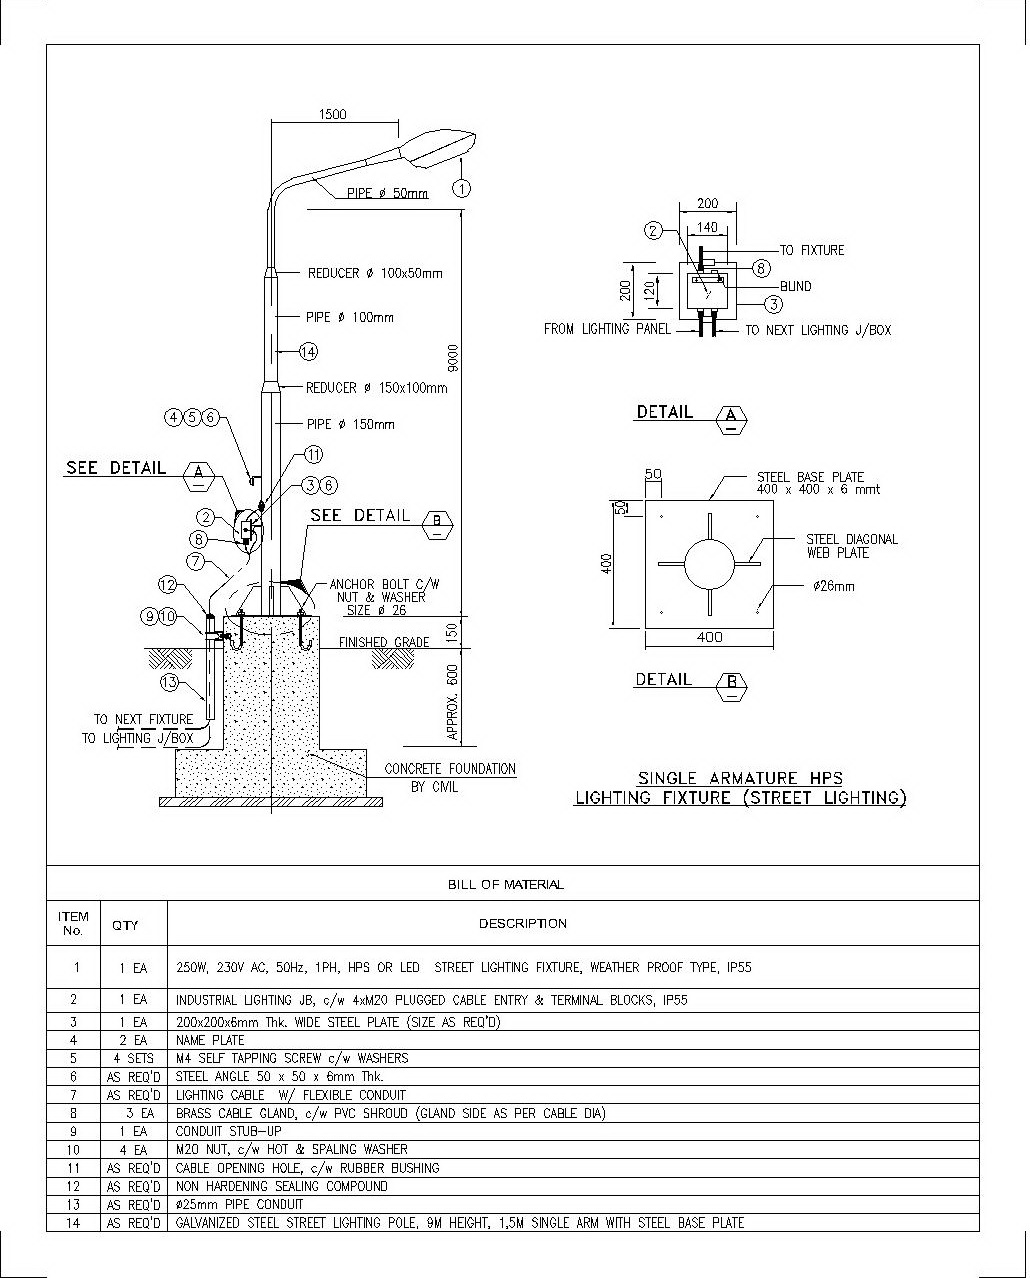 Installation details of single armature street lighting in industrial plan